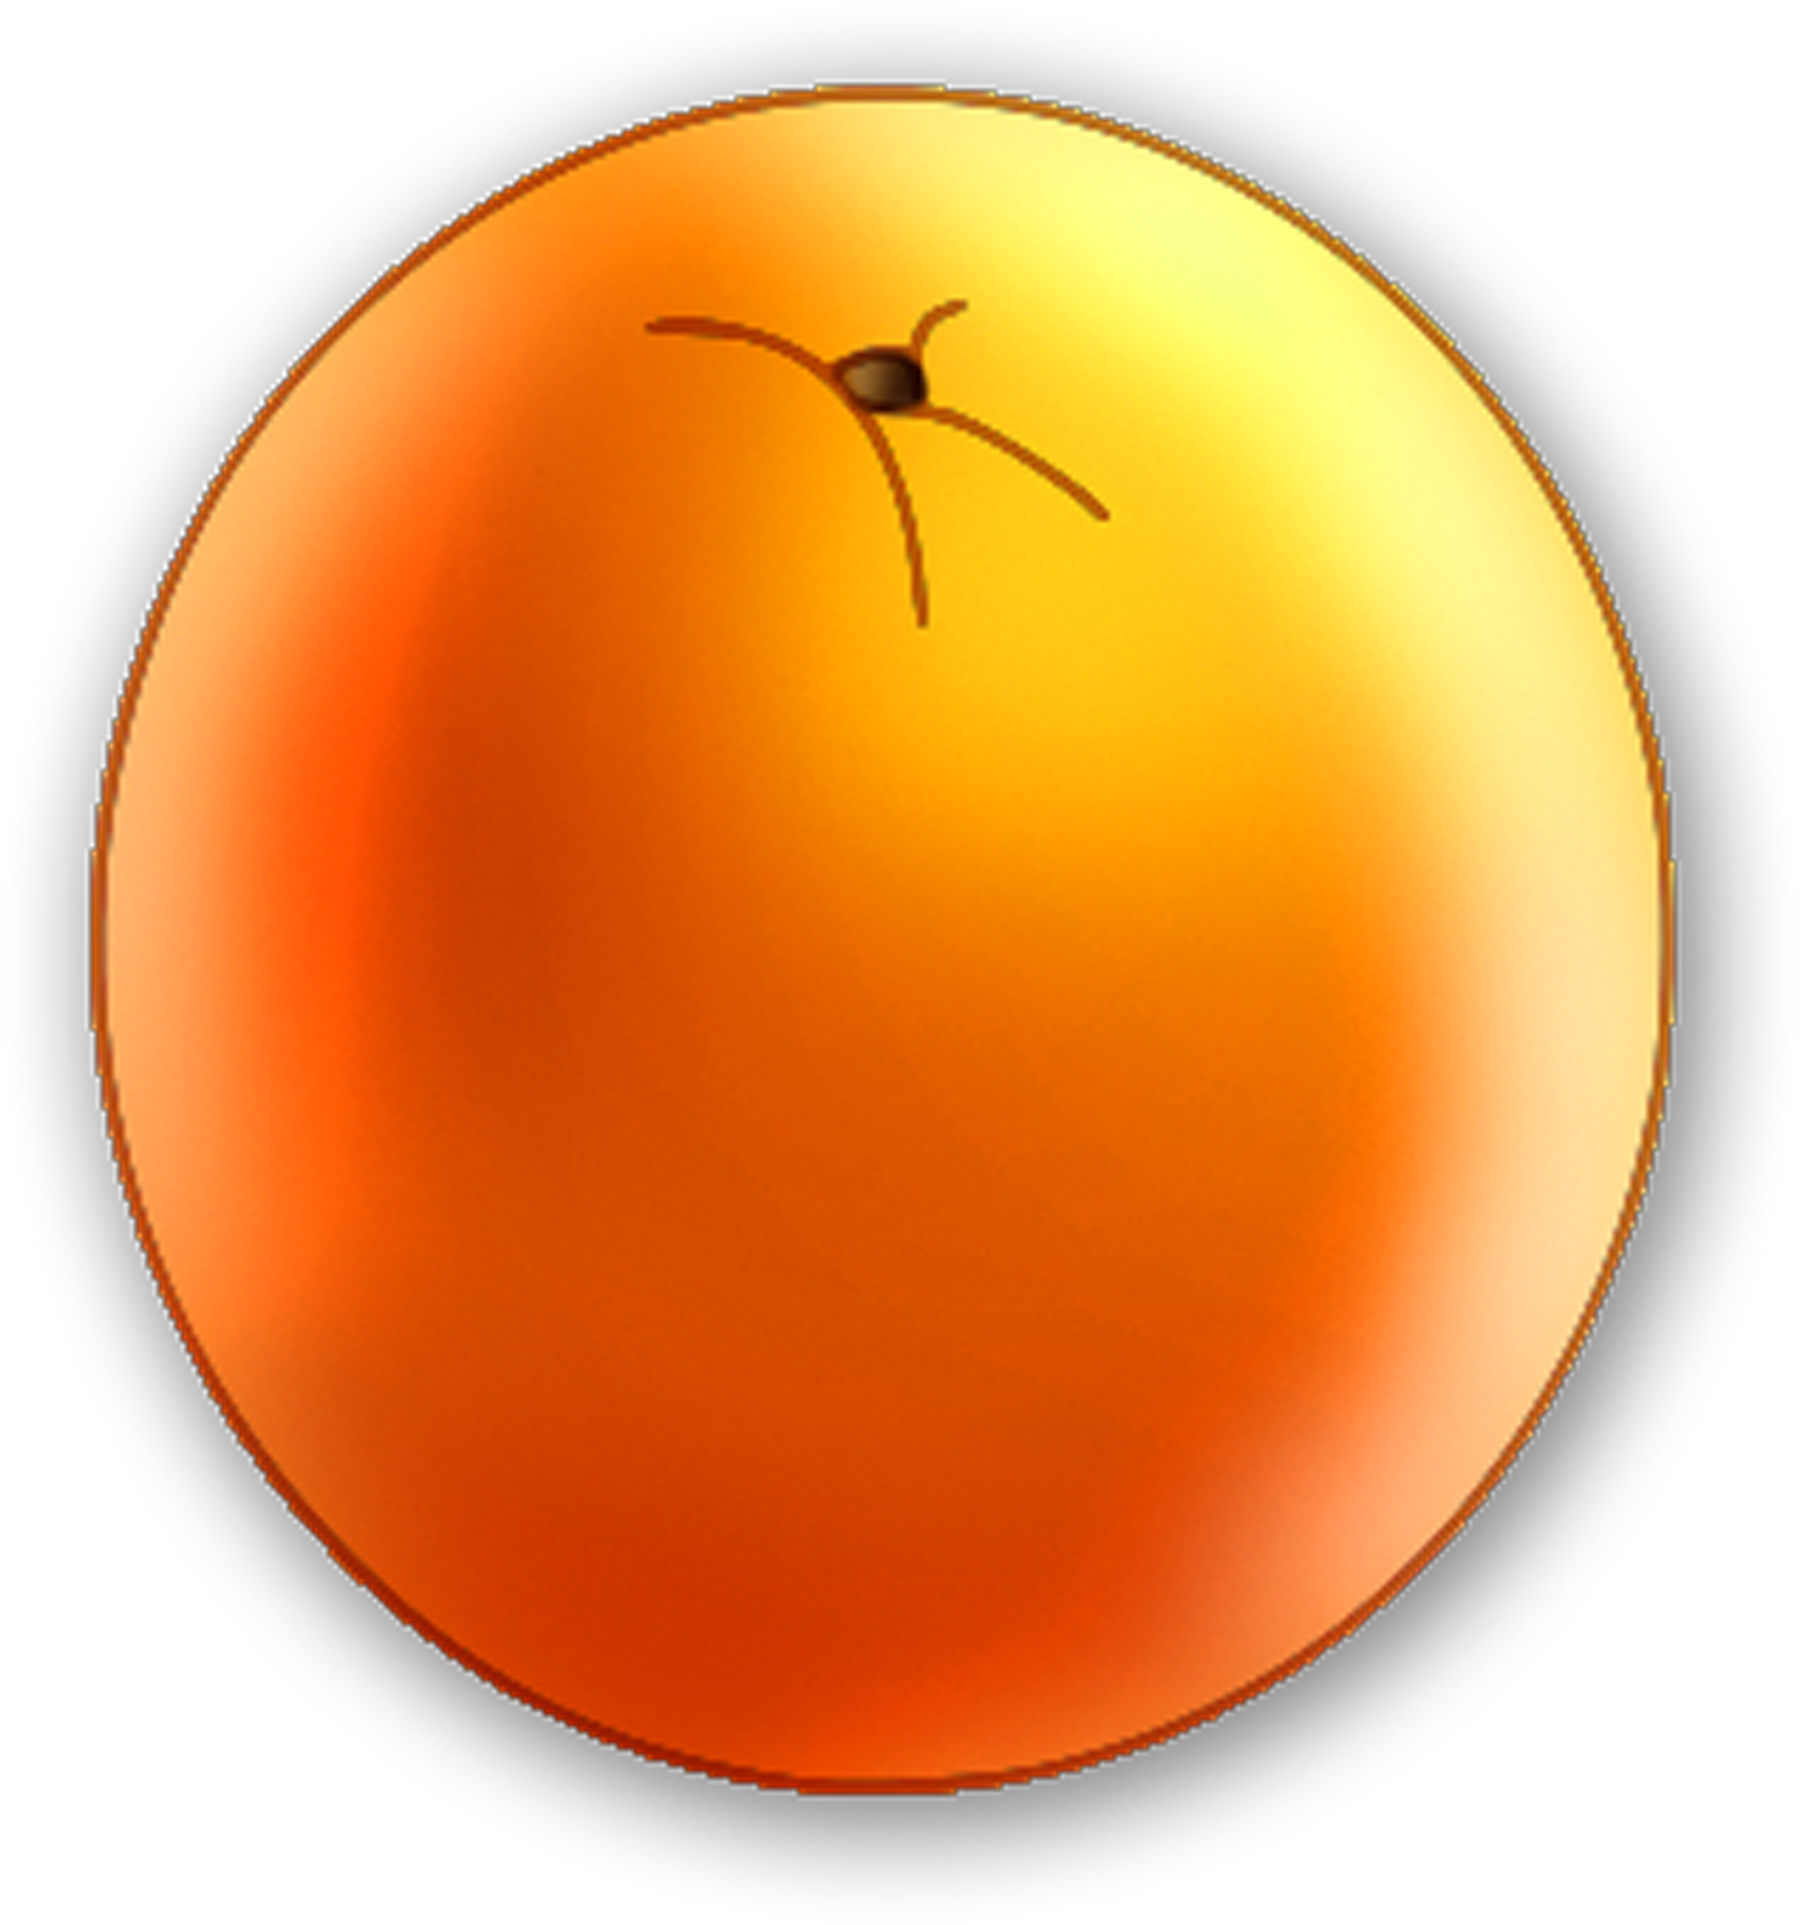 Orange fruit clipart.